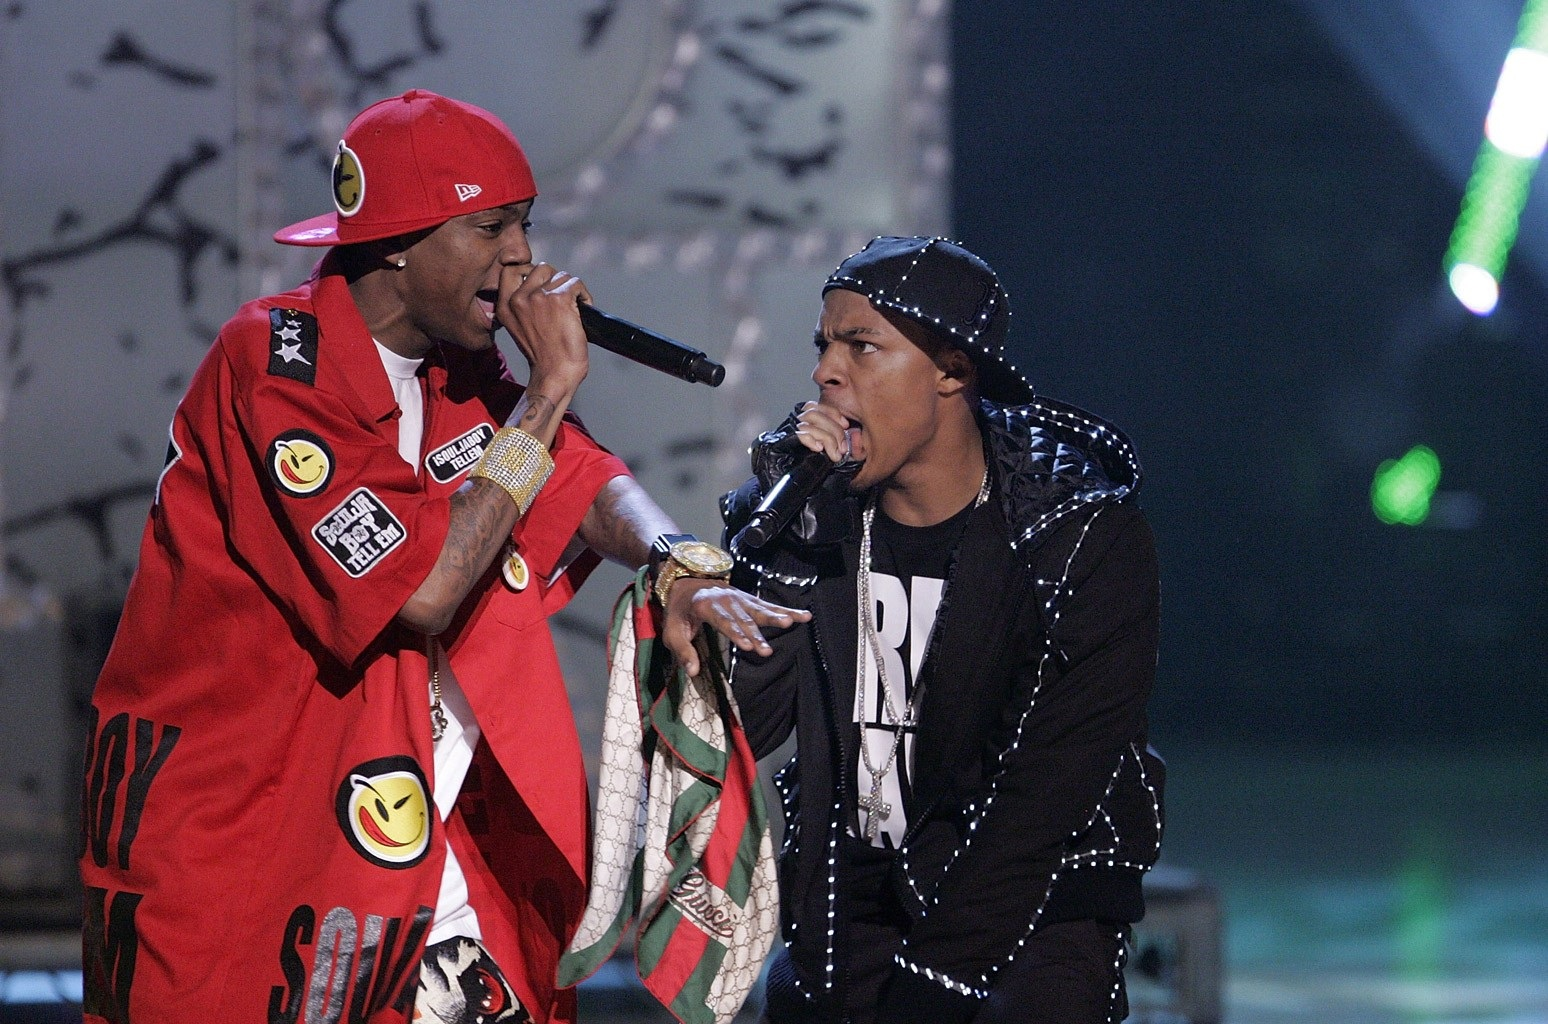 How to Watch the 'Verzuz' Battle Between Bow Wow and Soulja Boy